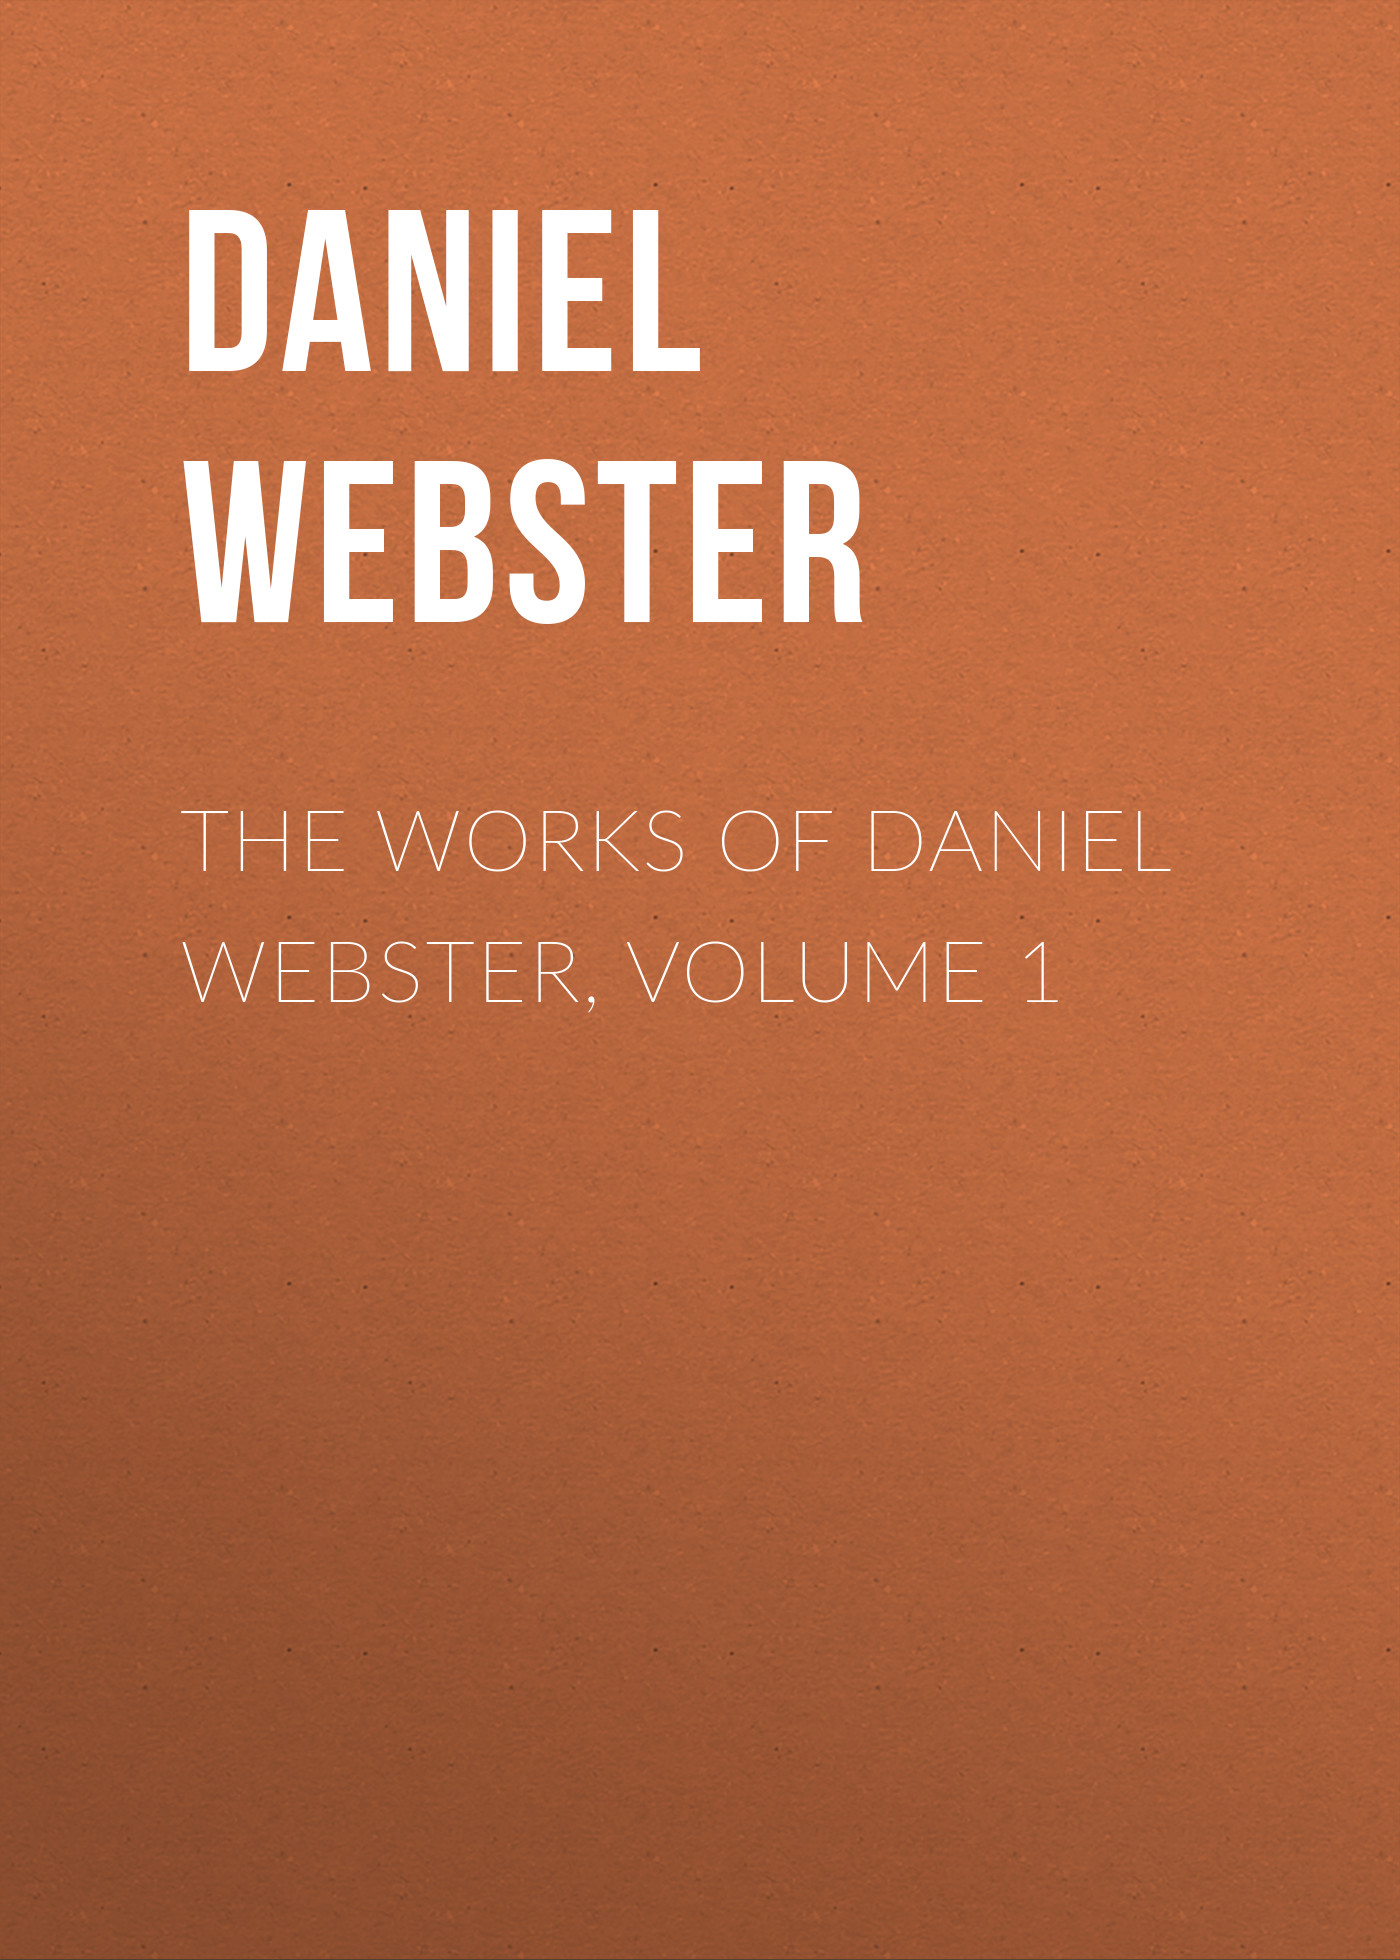 цена на Daniel Webster The Works of Daniel Webster, Volume 1